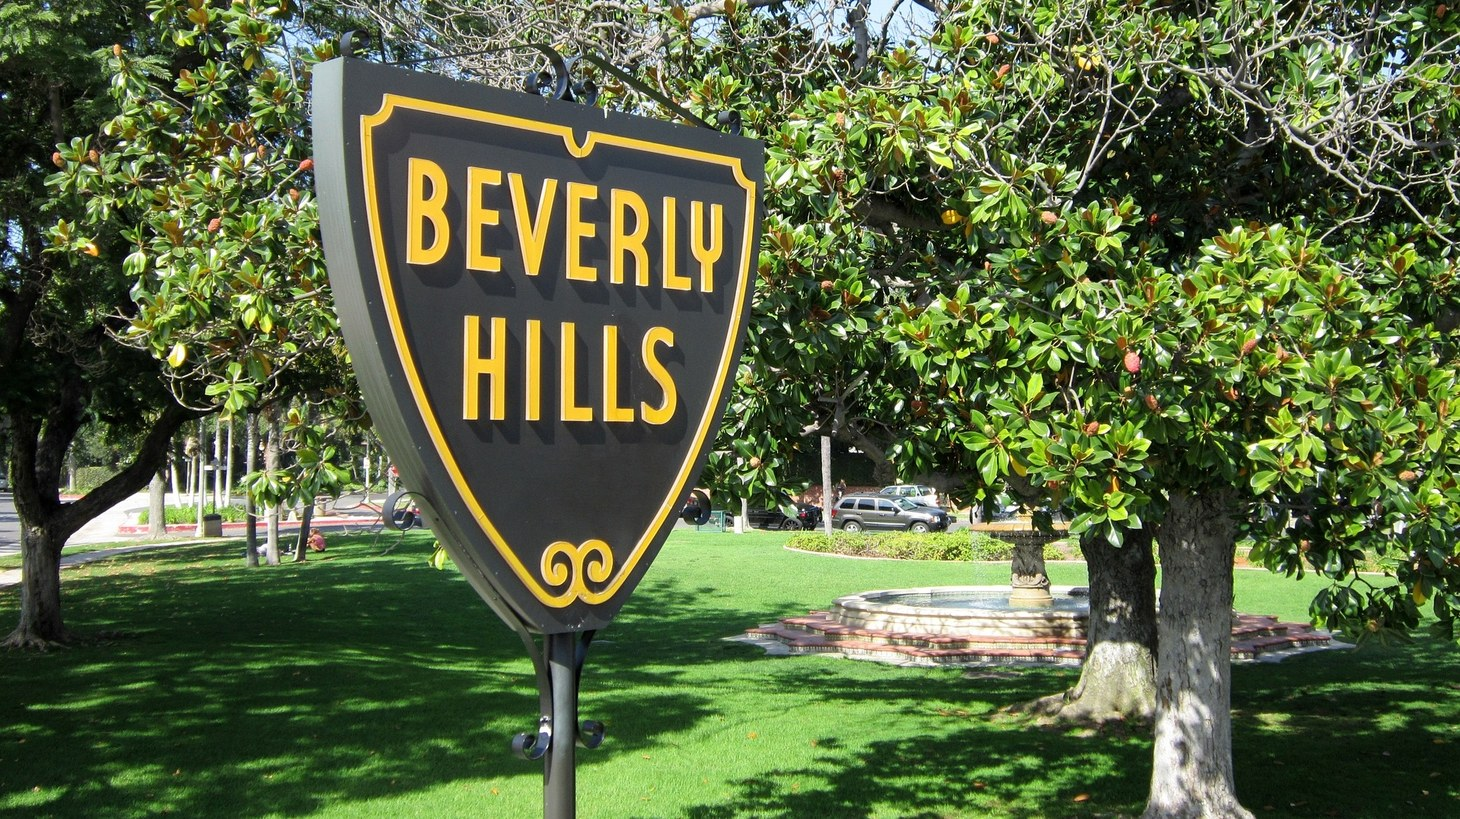 Trump's fundraiser tonight is held at Geoffrey Palmer's home in Beverly Hills.